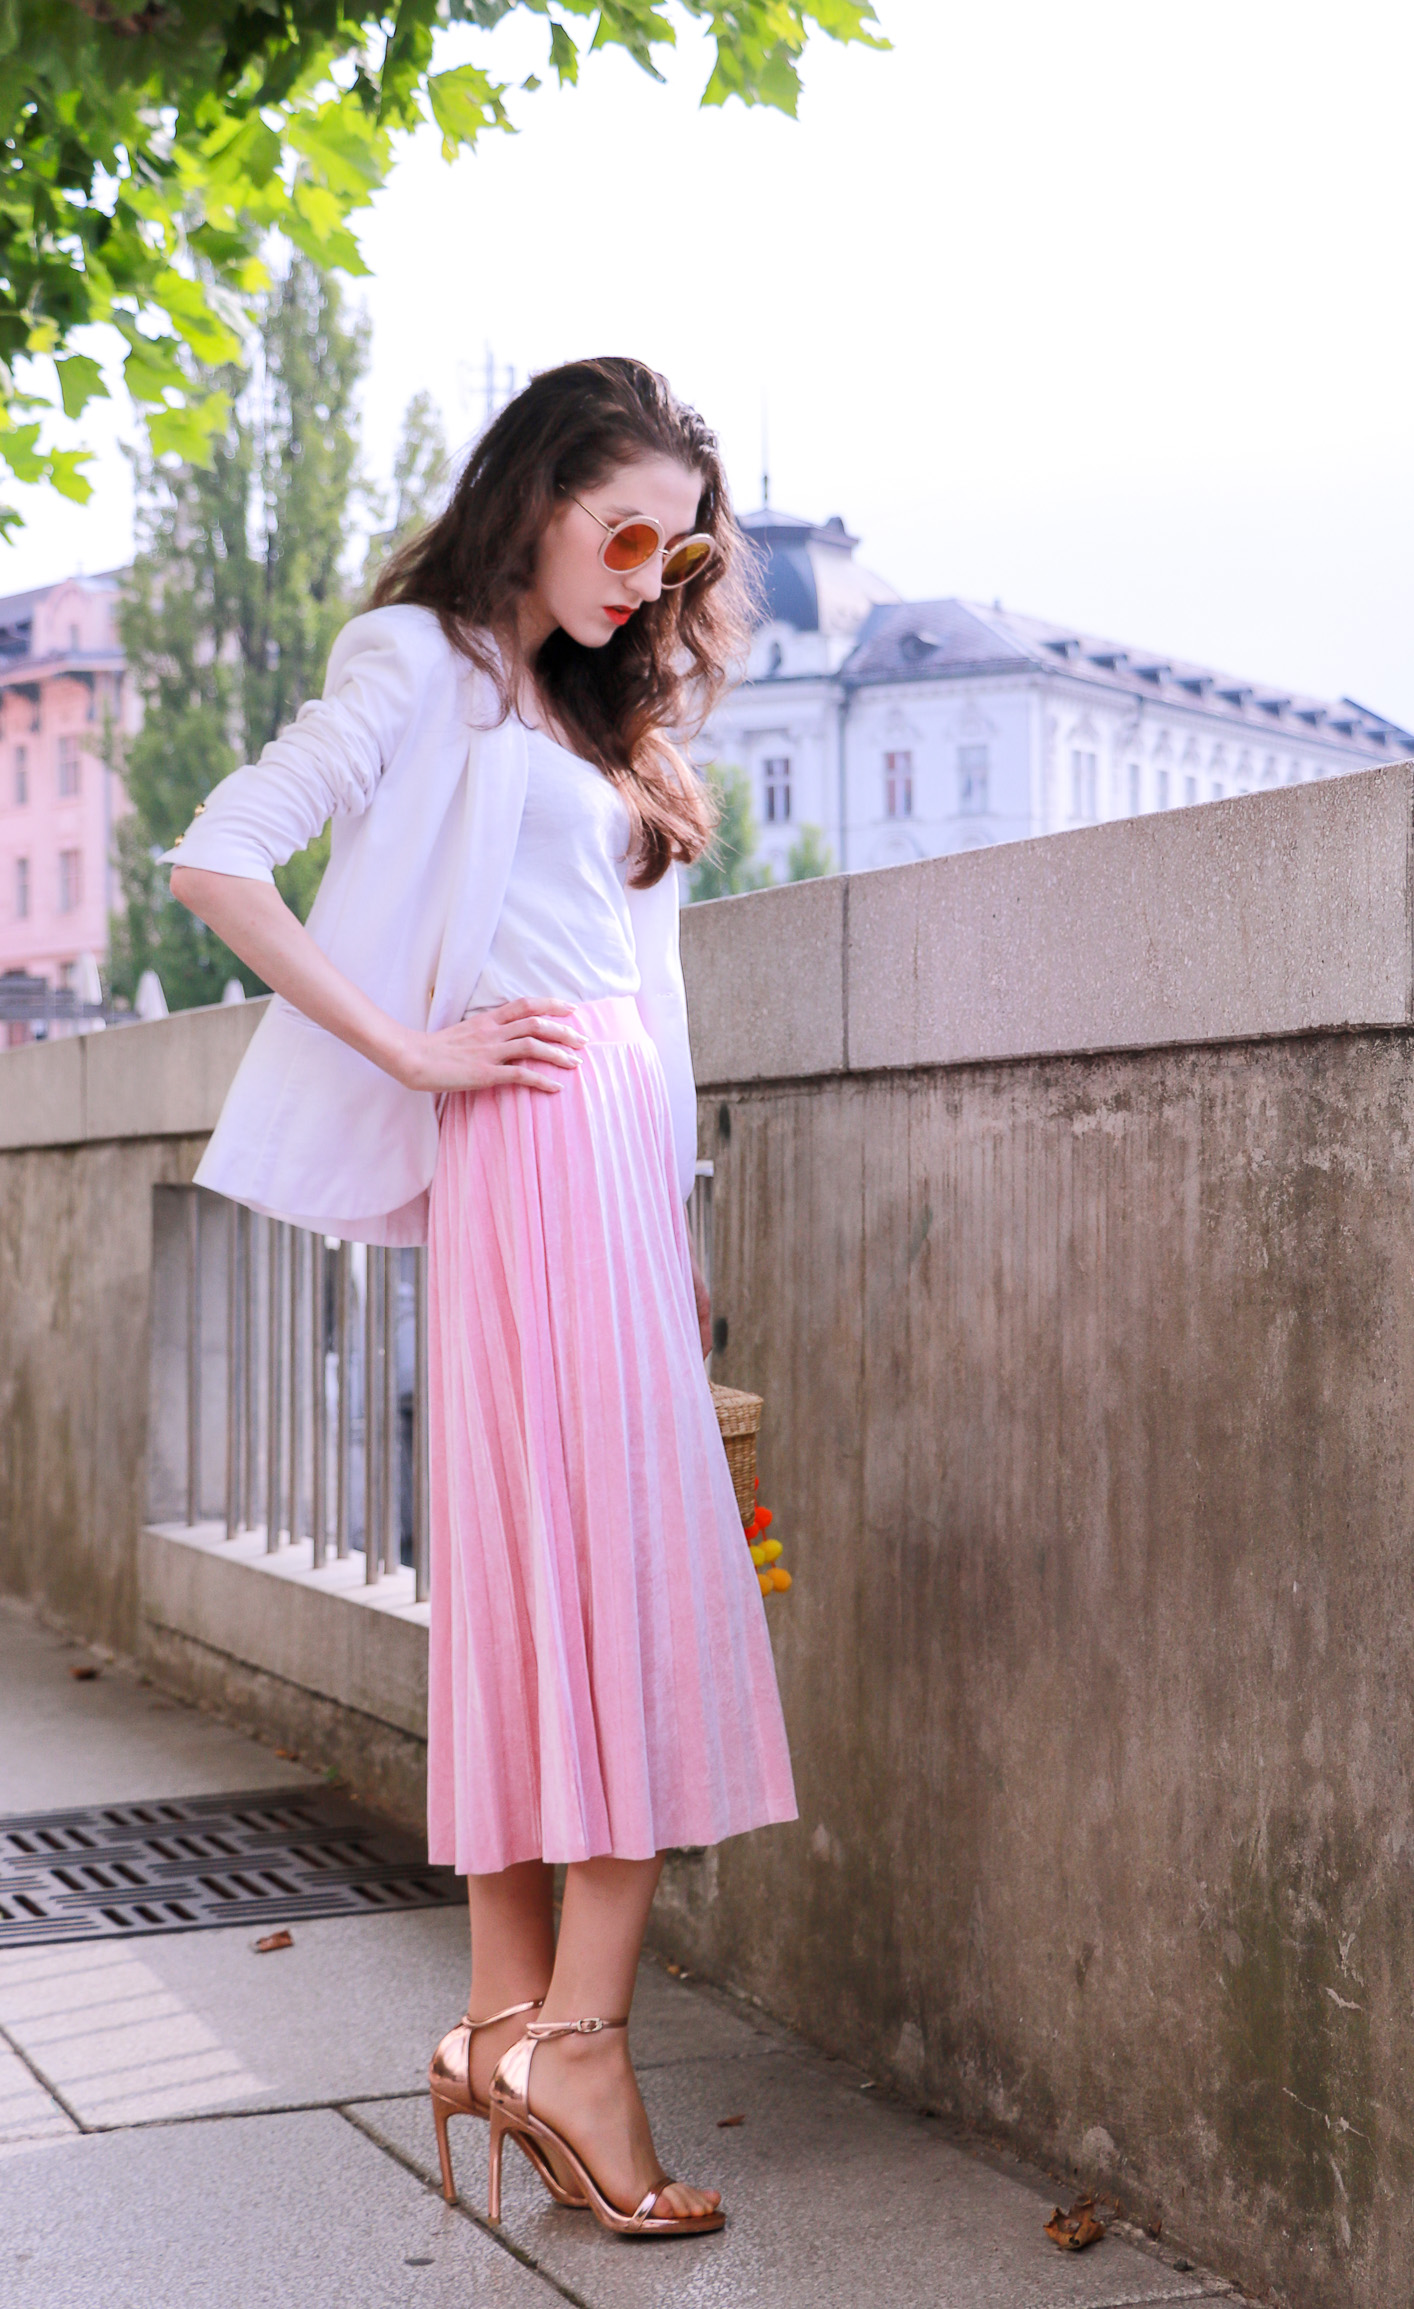 Fashion blogger Veronika Lipar of Brunette From Wall Street wearing chic pink midi skirt with pleats, Sunday Somewhere round sunglasses, metallic sandals from Stuart Weitzman, and raffia basket bag from Nannancay